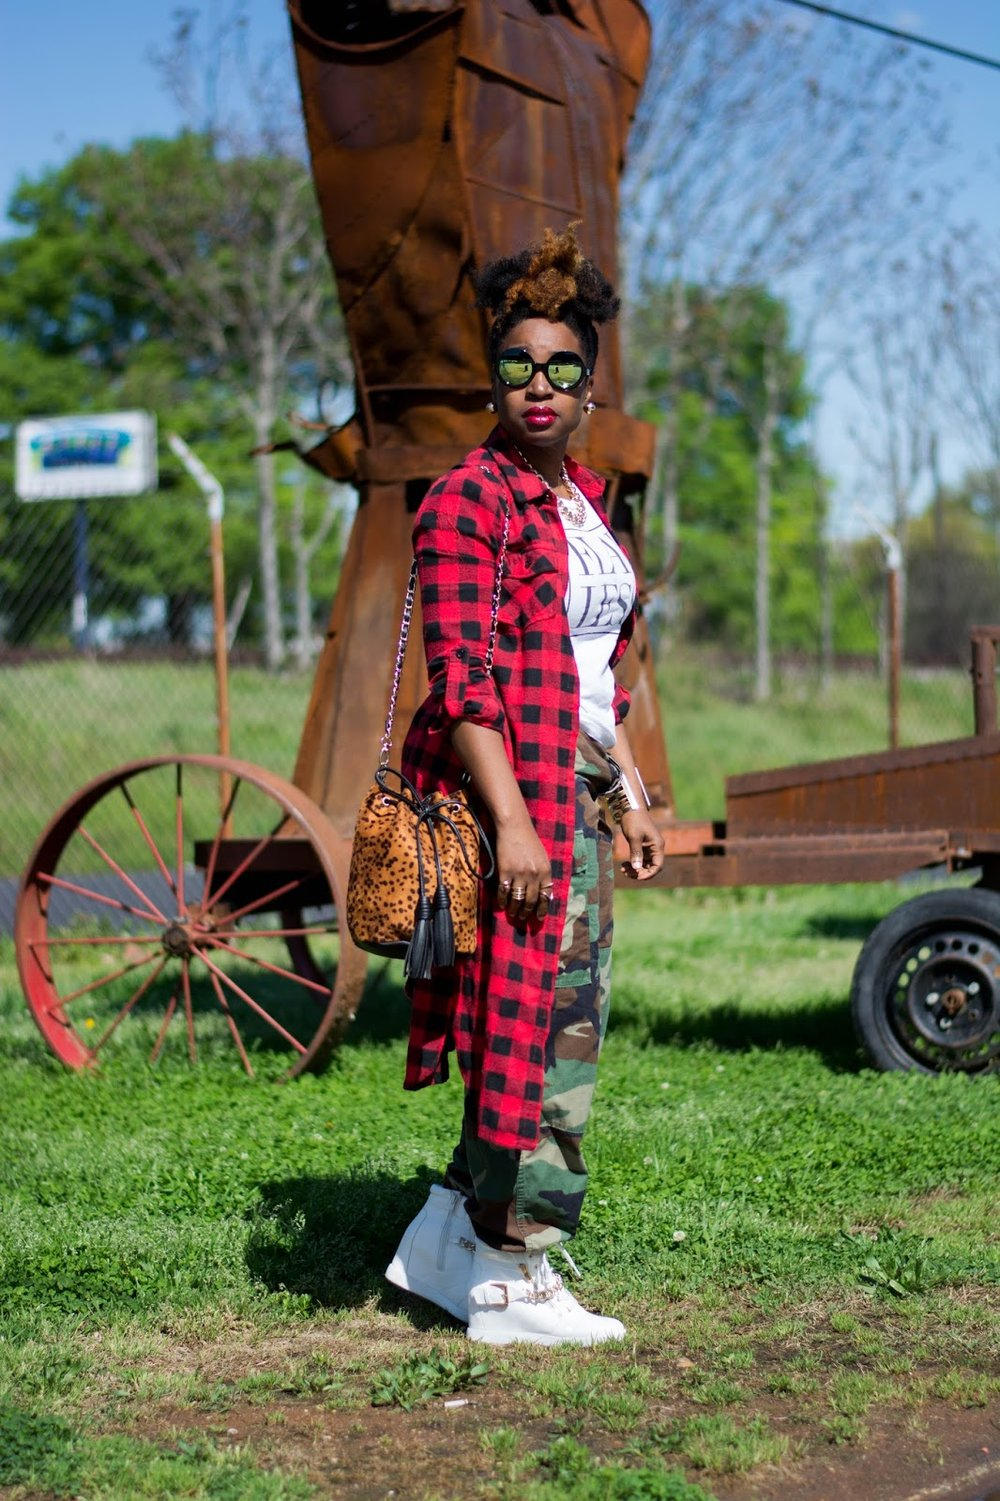 Atlanta bloggers, Atlanta style blogger, Style blogger, Atlanta stylist, Mixed prints, Red flannel duster, Army fatigue, Forever21, JustFab sneakers, Street style, Street fashion, Black bloggers, Black girls rocks, Black girls killing it